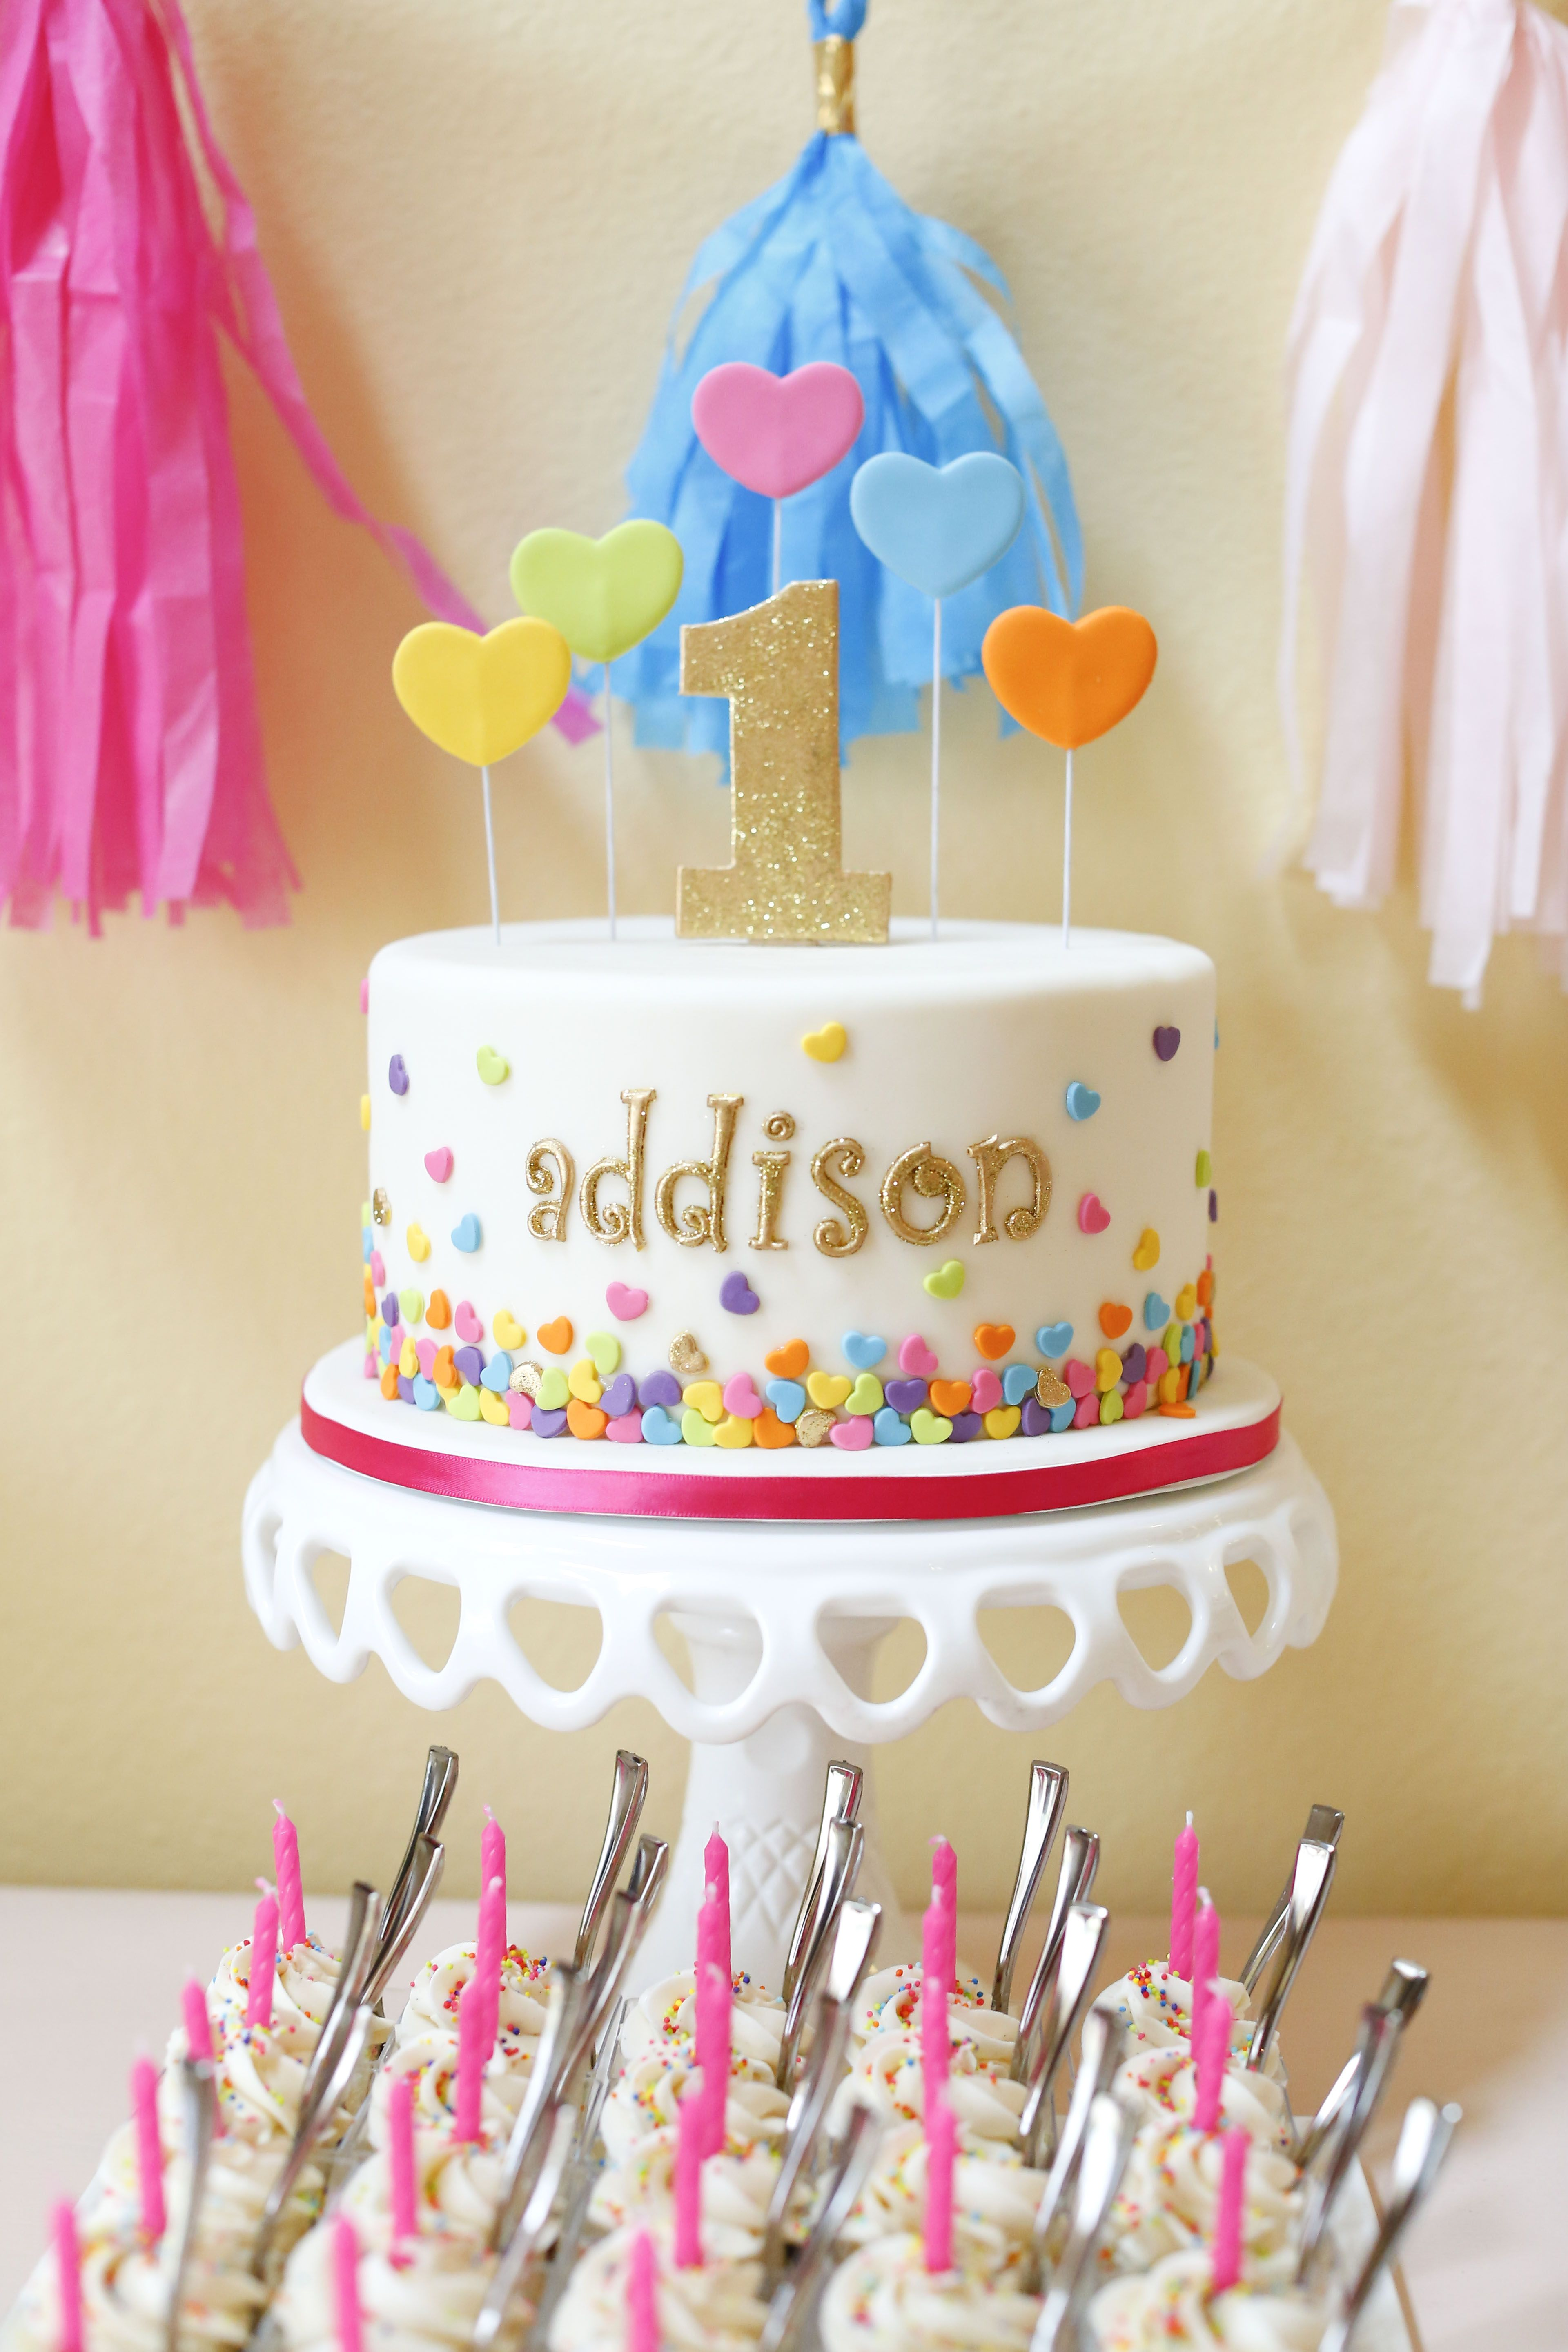 A darling, colorful 1st birthday cake! #babyeinstein #firstbirthday